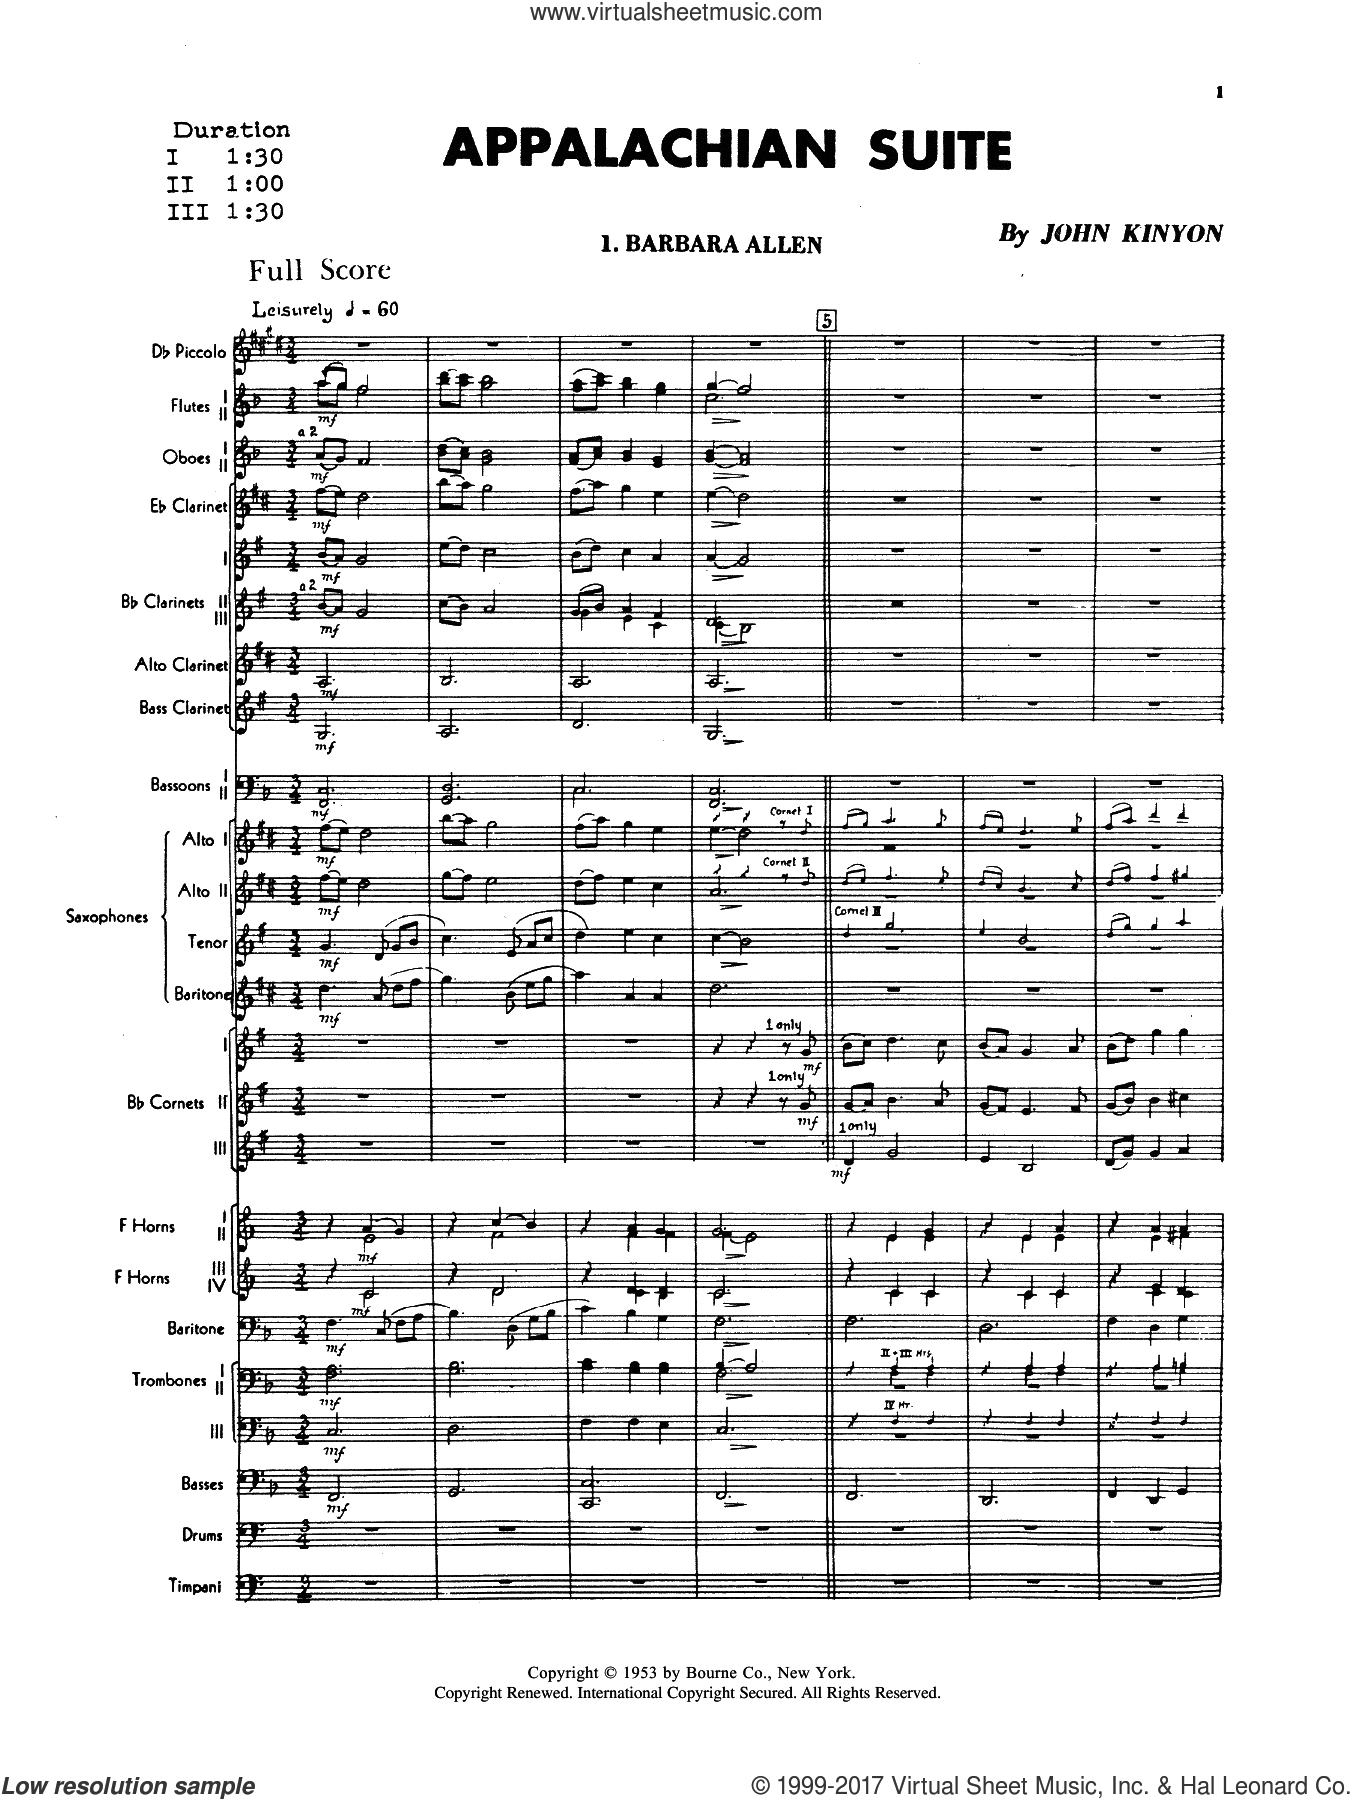 Appalachian Suite (COMPLETE) sheet music for concert band by John Kinyon, intermediate skill level